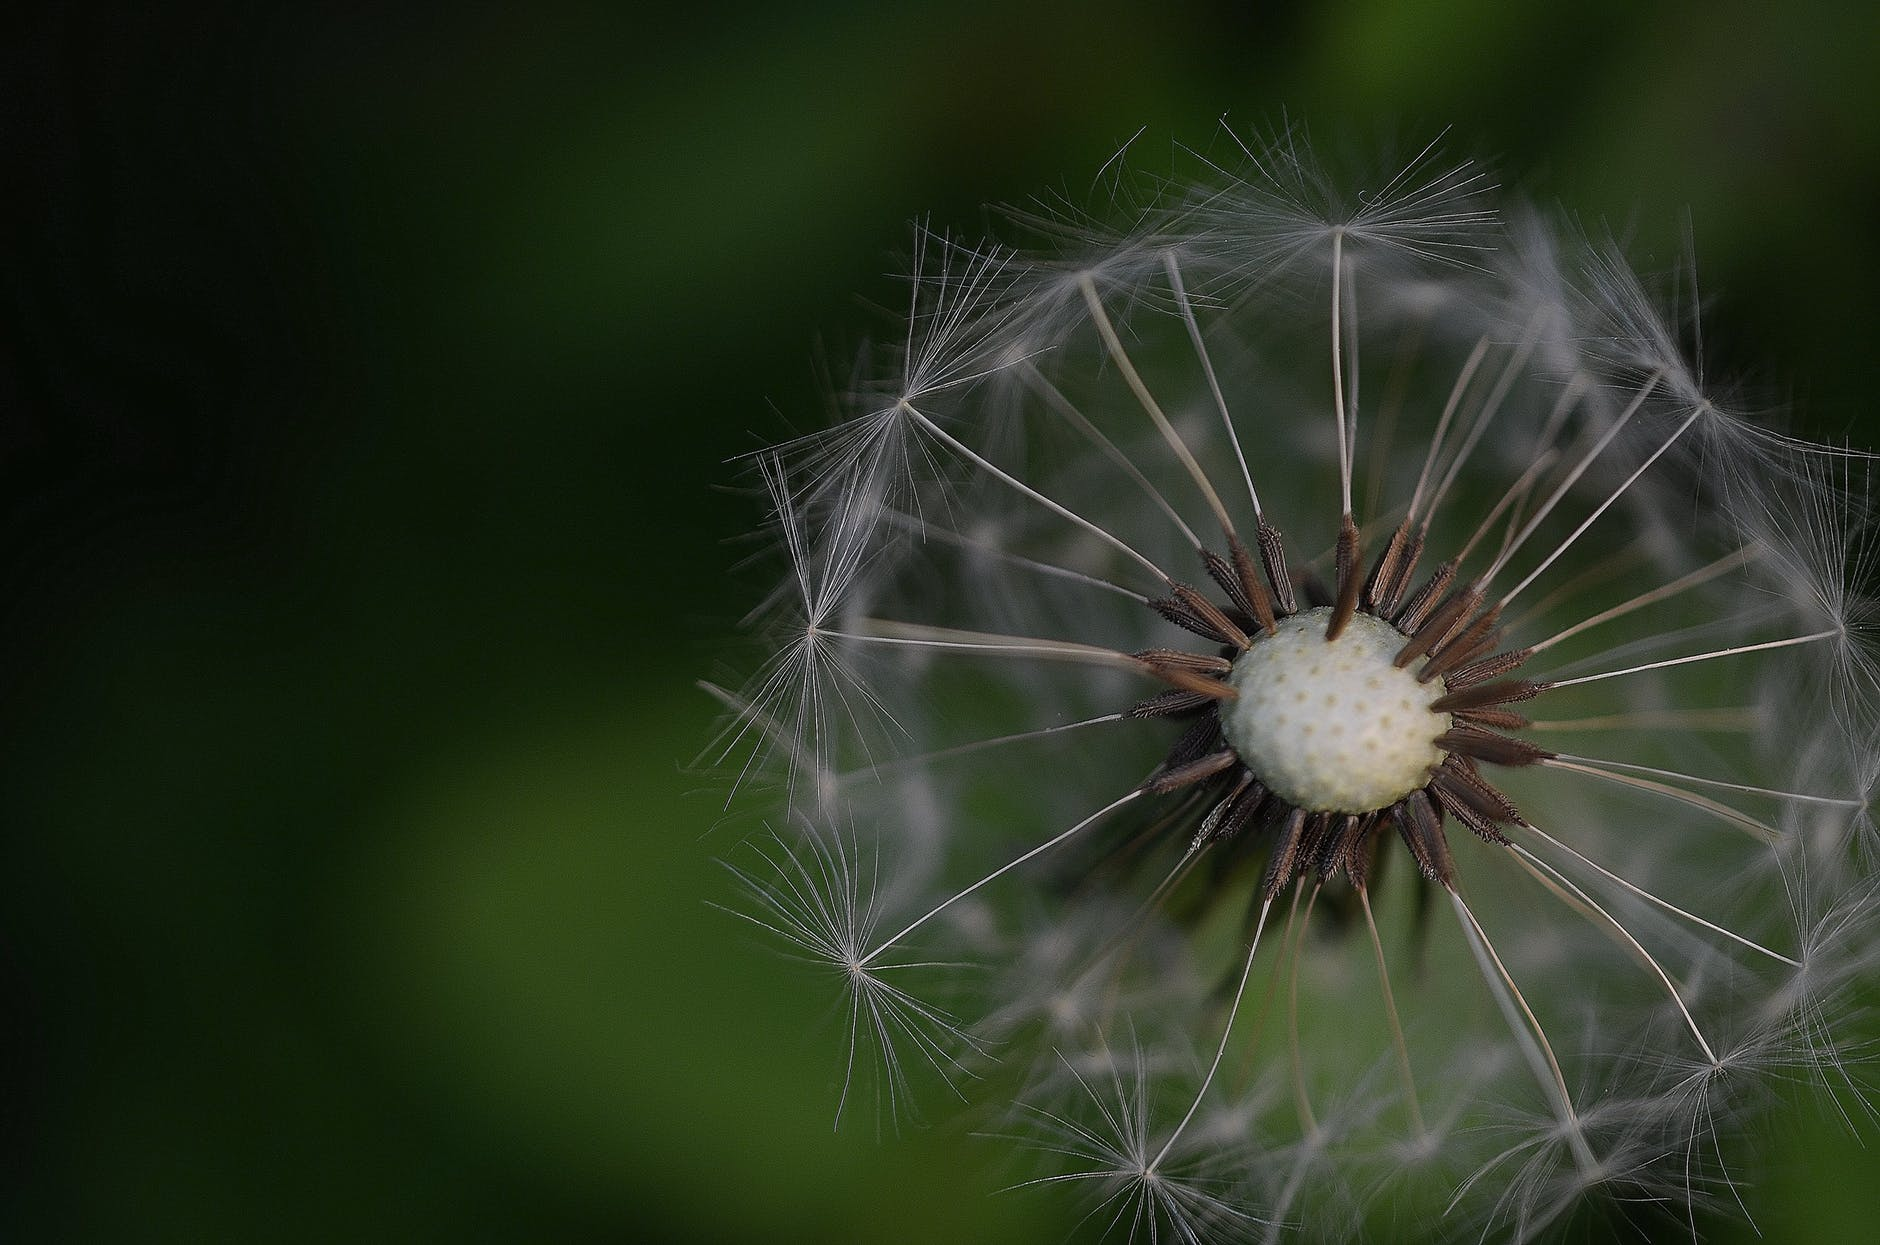 dandelion-colours-colour-green-63646